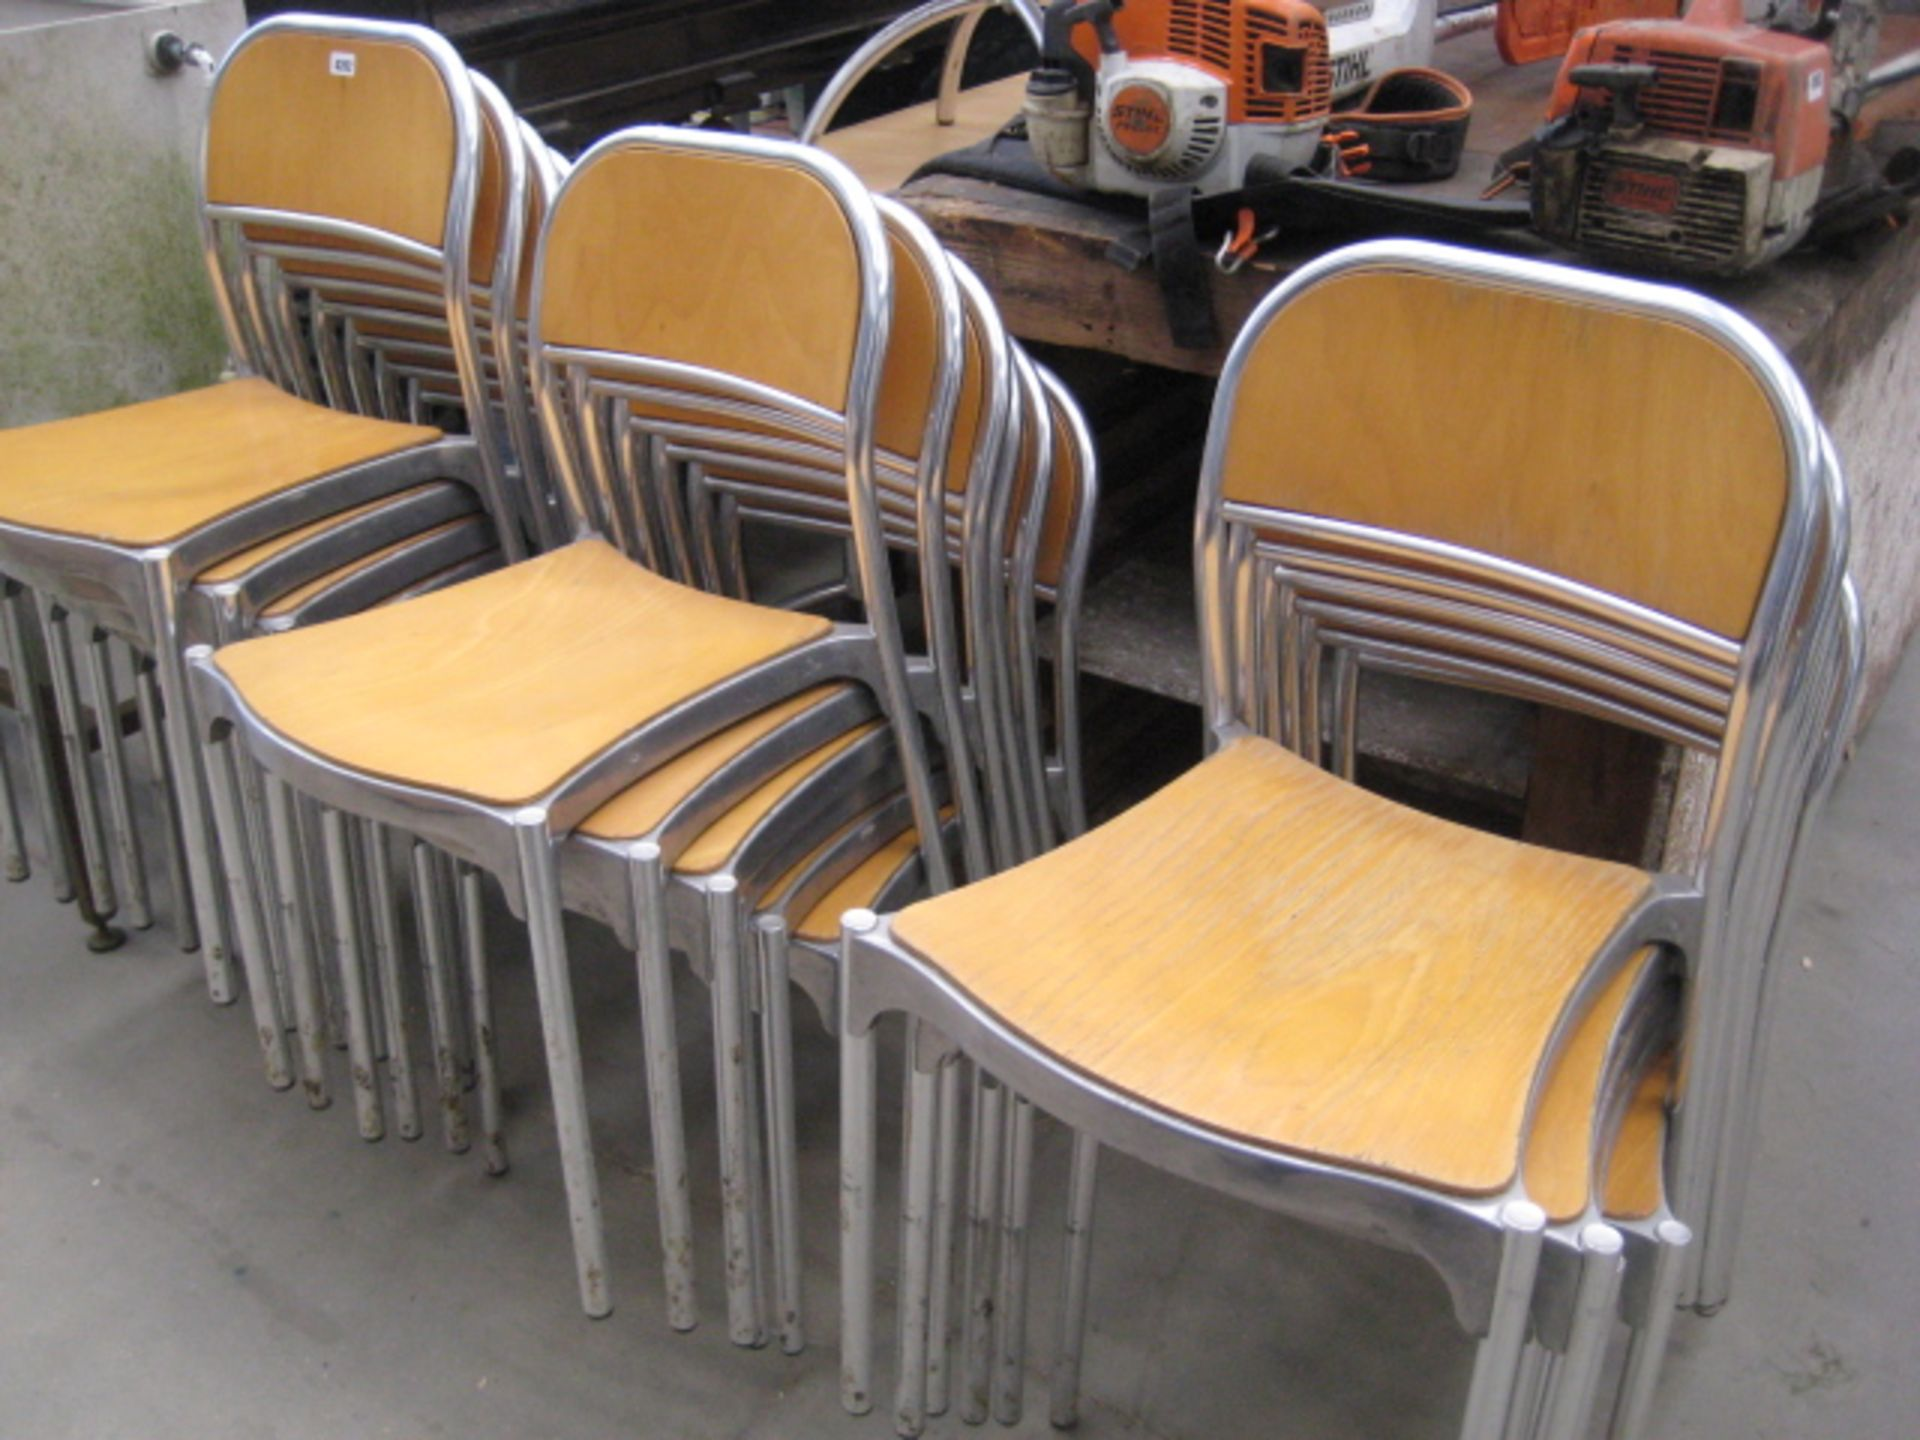 Lot 4202 - Quantity of beech and aluminium stacking chairs together with 3 cafe style tables